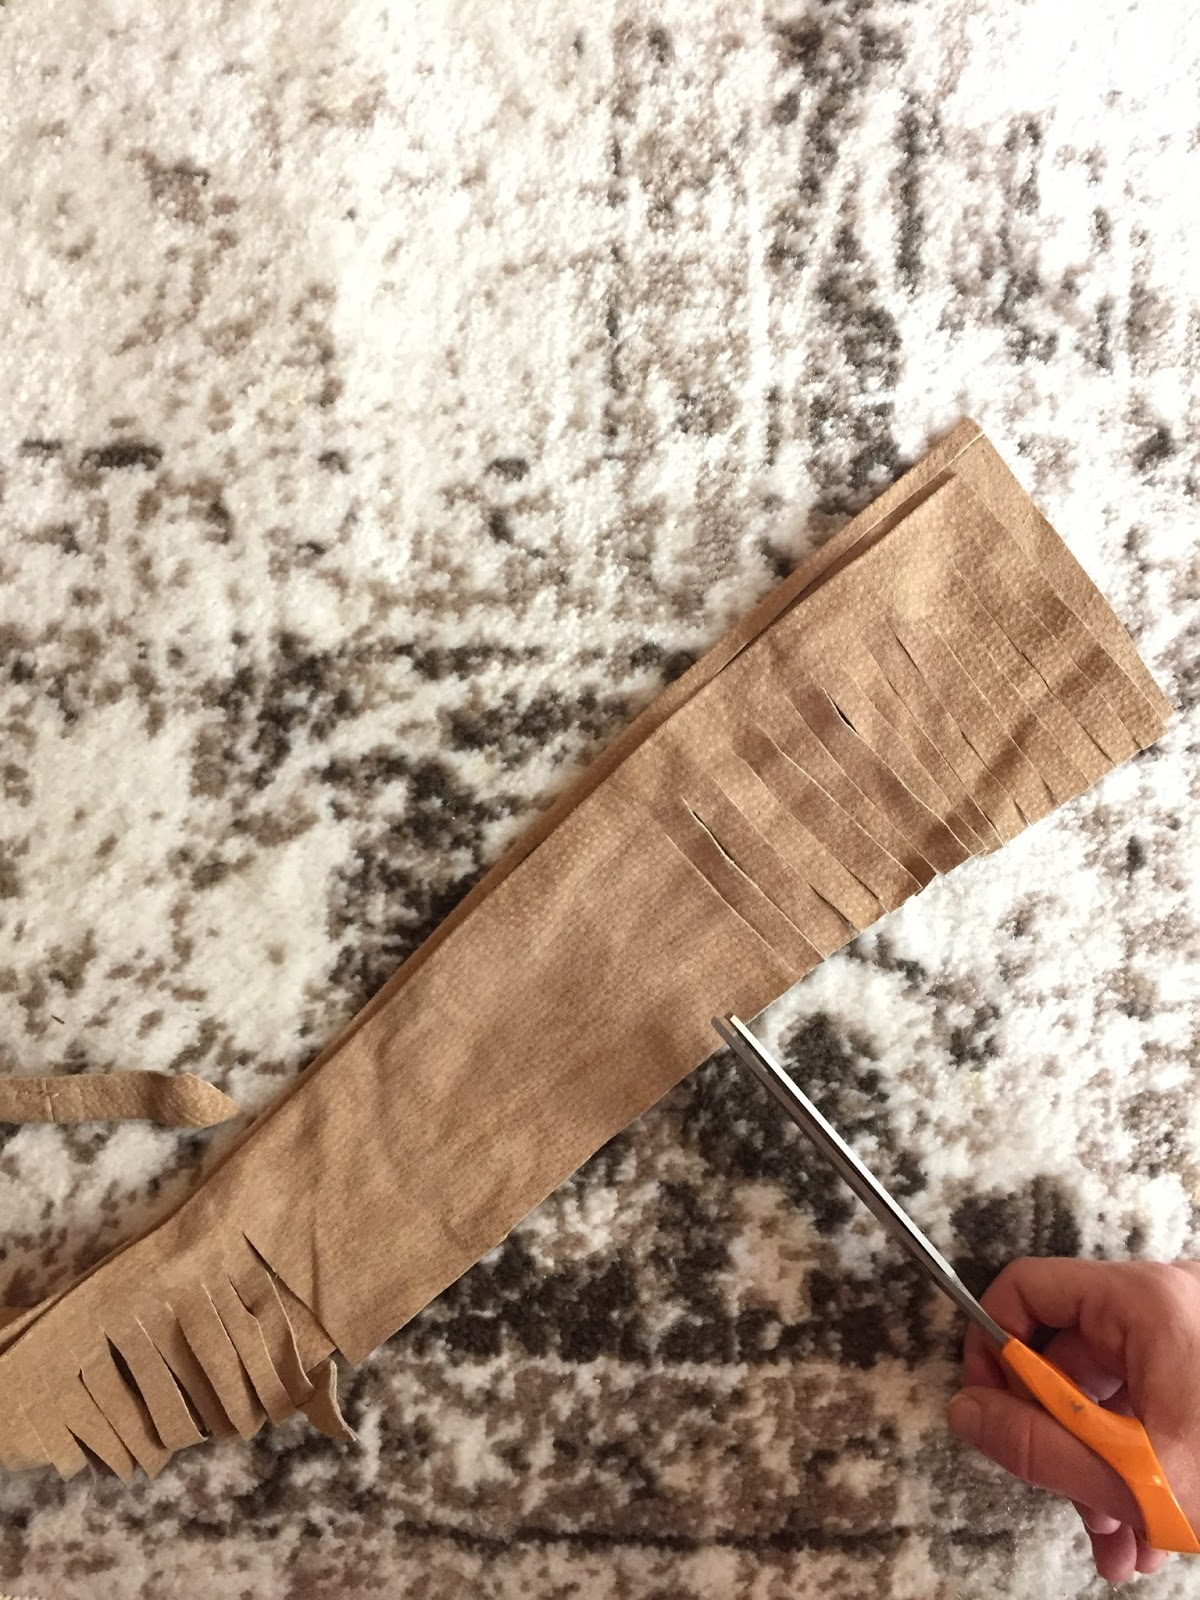 Hostess gifts: Make a suede tassel from scraps.